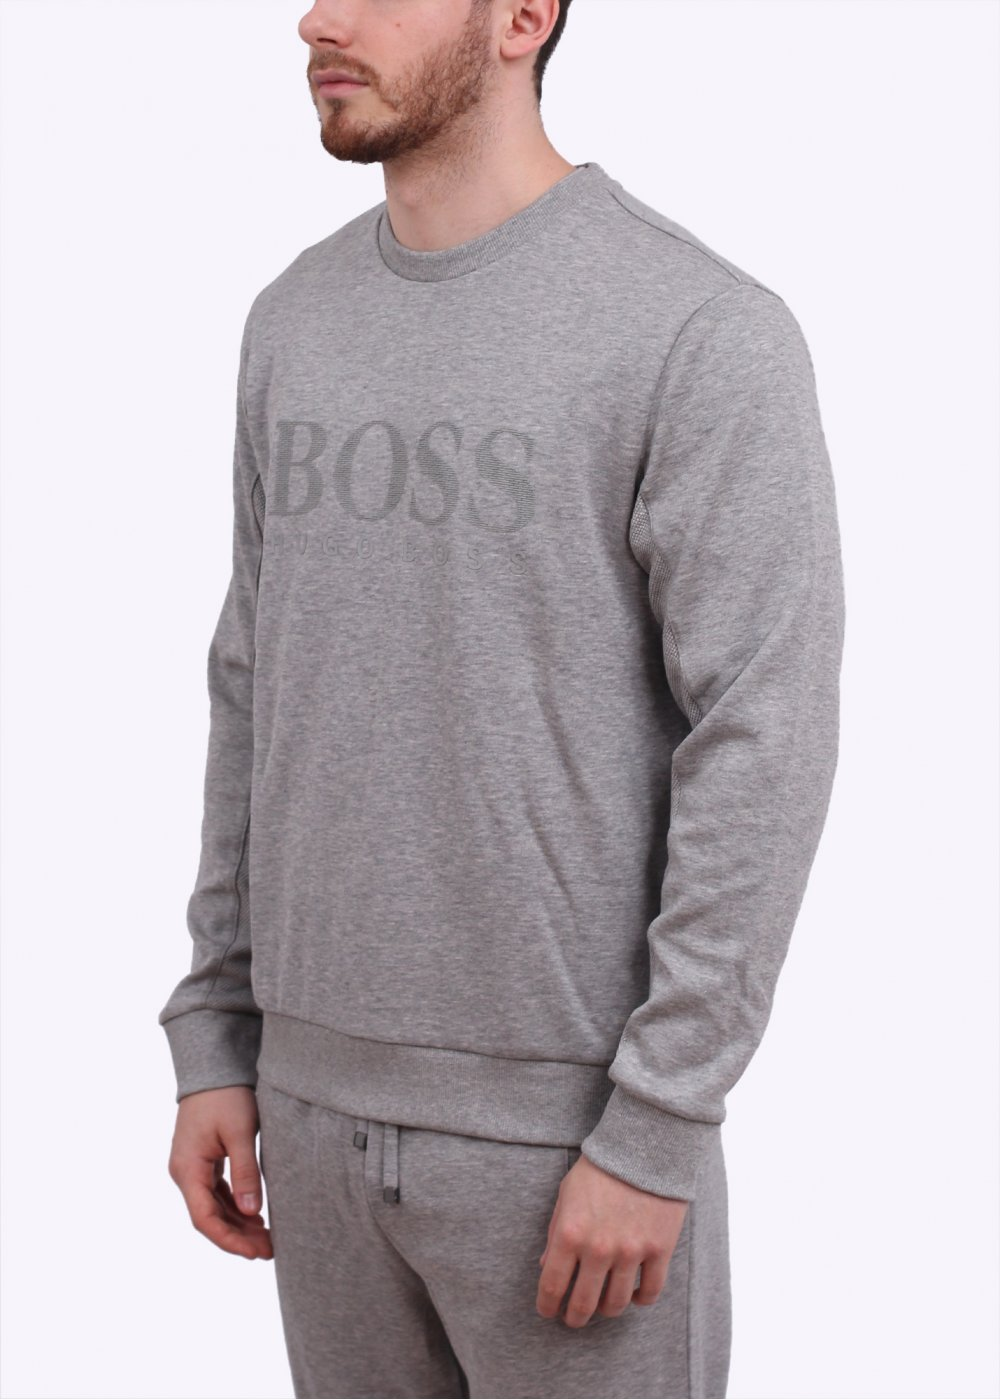 hugo boss grey sweater sweater jeans and boots. Black Bedroom Furniture Sets. Home Design Ideas